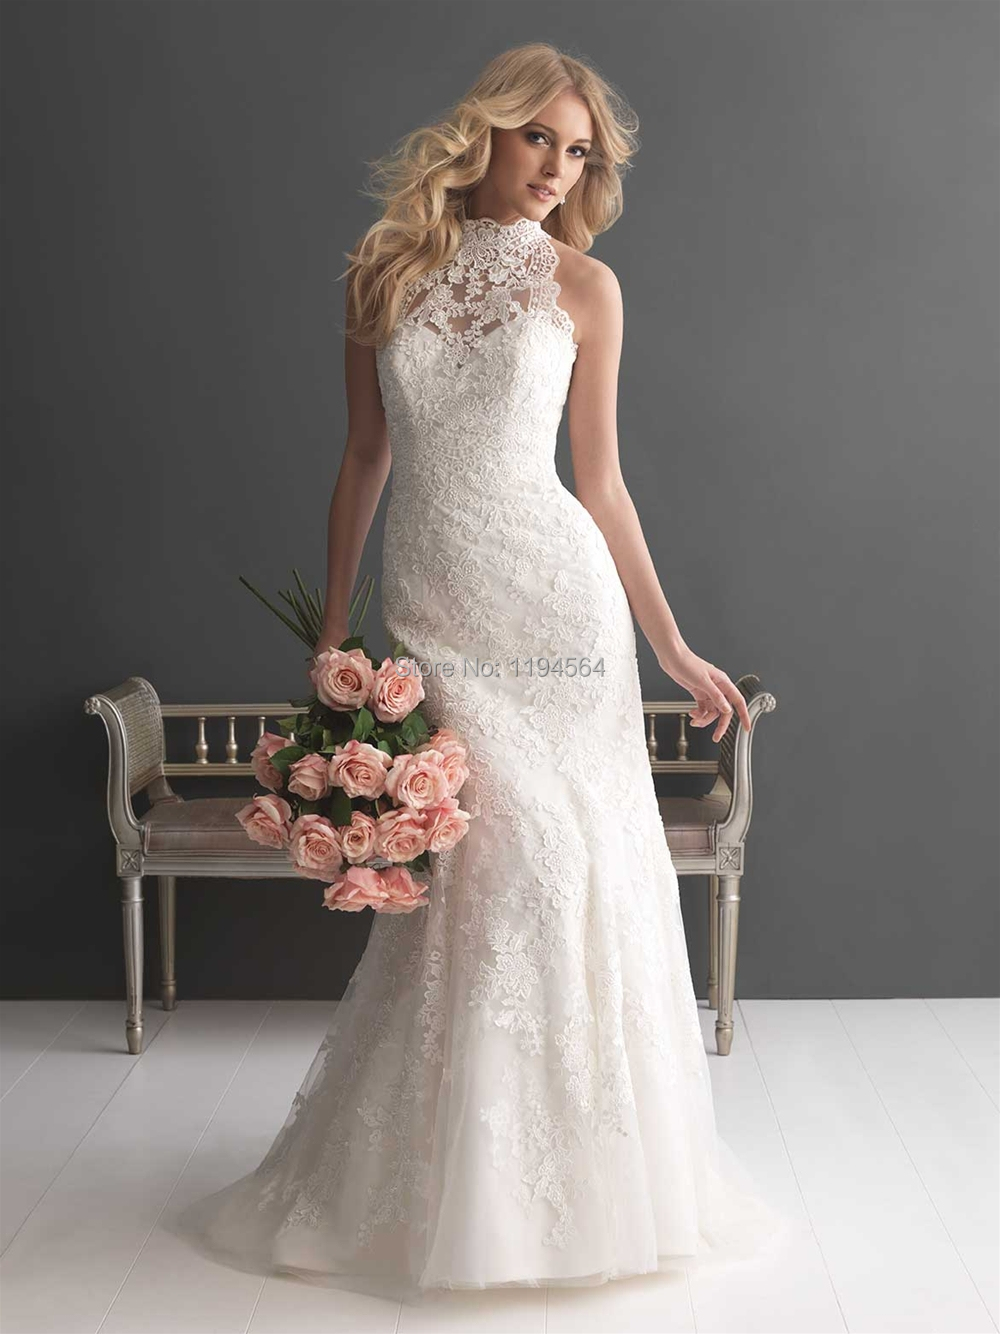 Cheap Wedding Dresses Made In China One Shoulder Bridal Gown 2015 Top Lace Vestido De Noiva Princesa Zipper Back WH540